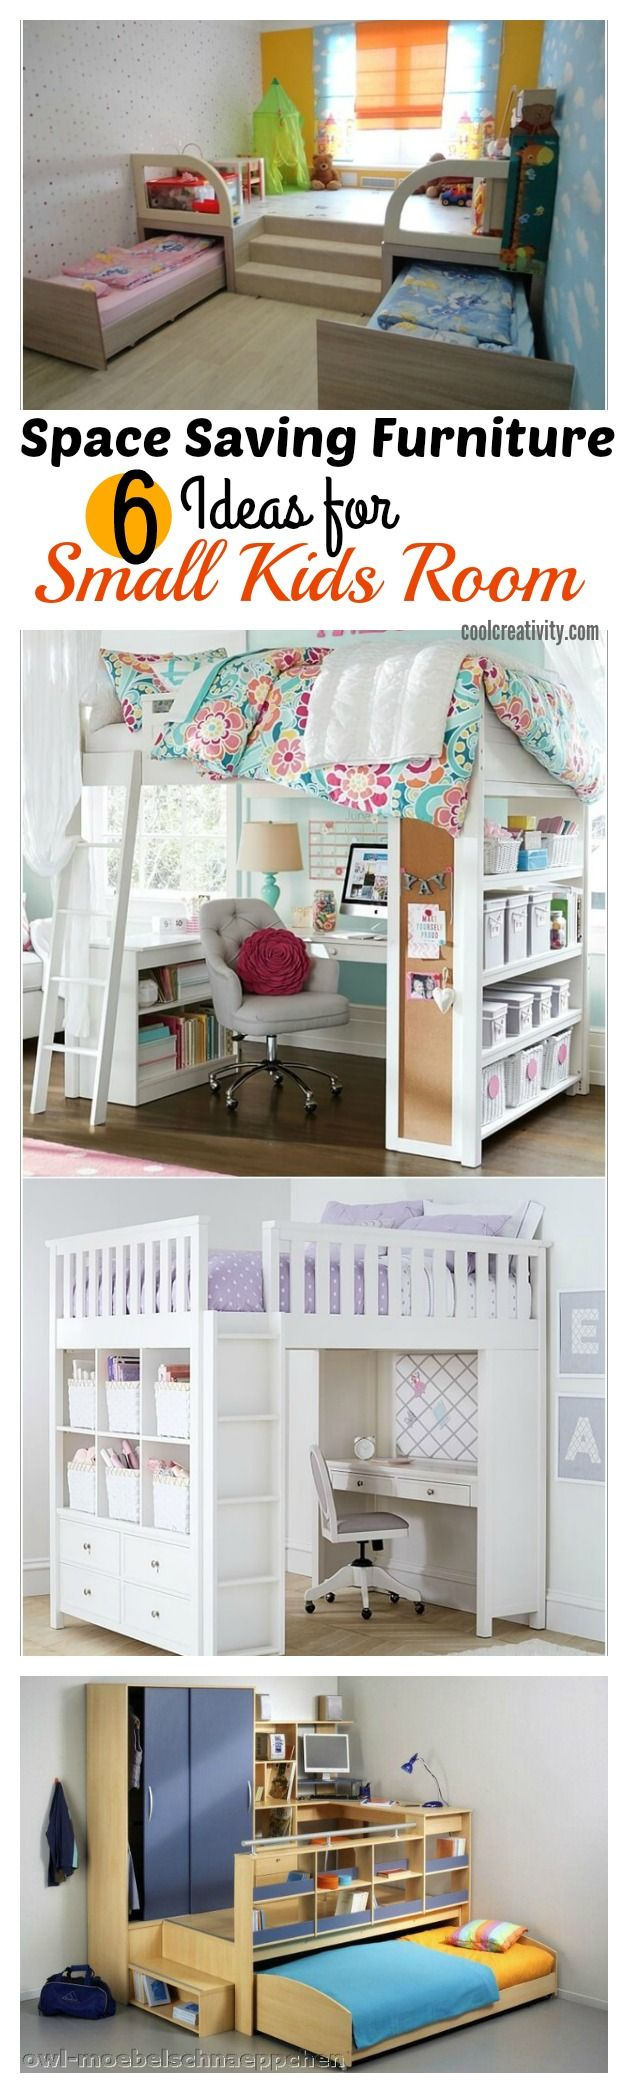 Childrens Storage Beds For Small Rooms best 25+ beds for small rooms ideas on pinterest | girls bedroom